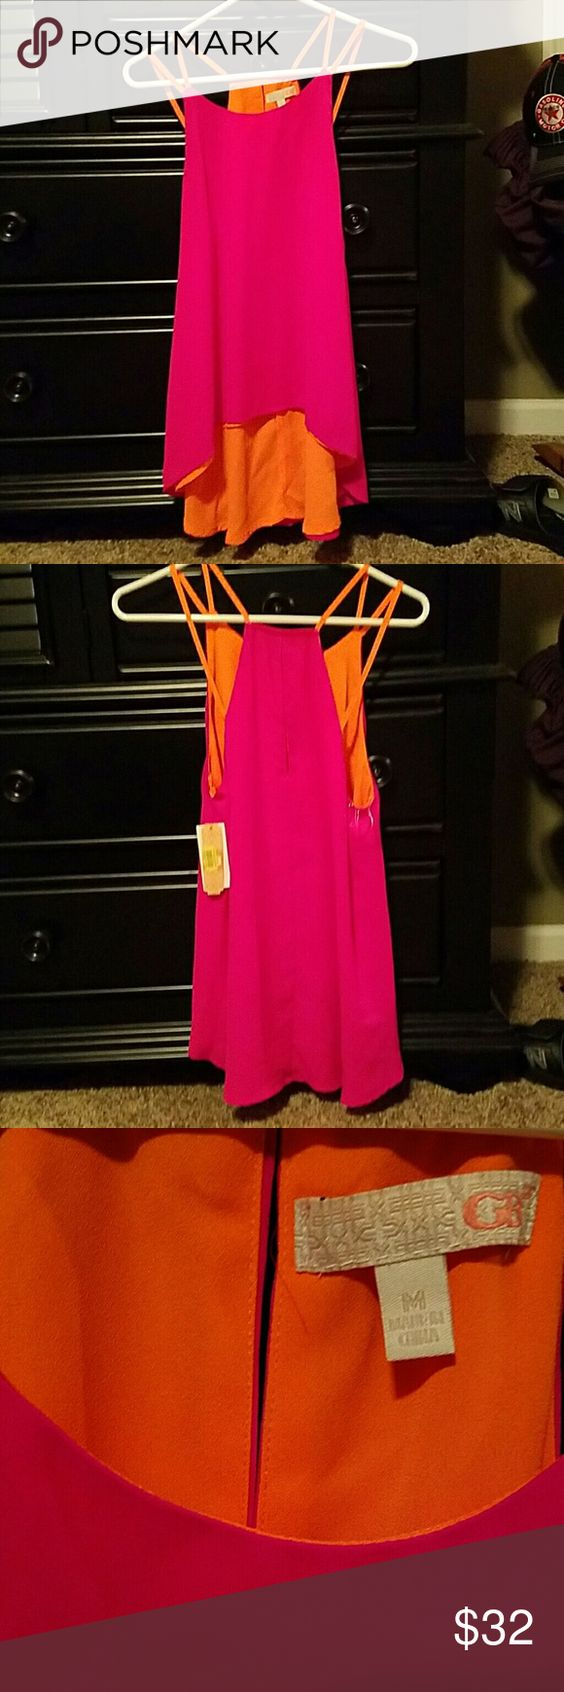 GB Hot Pink and Neon Orange Camisole Top Brand new with tags Camisole Top in Hot Pink and Neon Orange. GB Tops Camisoles